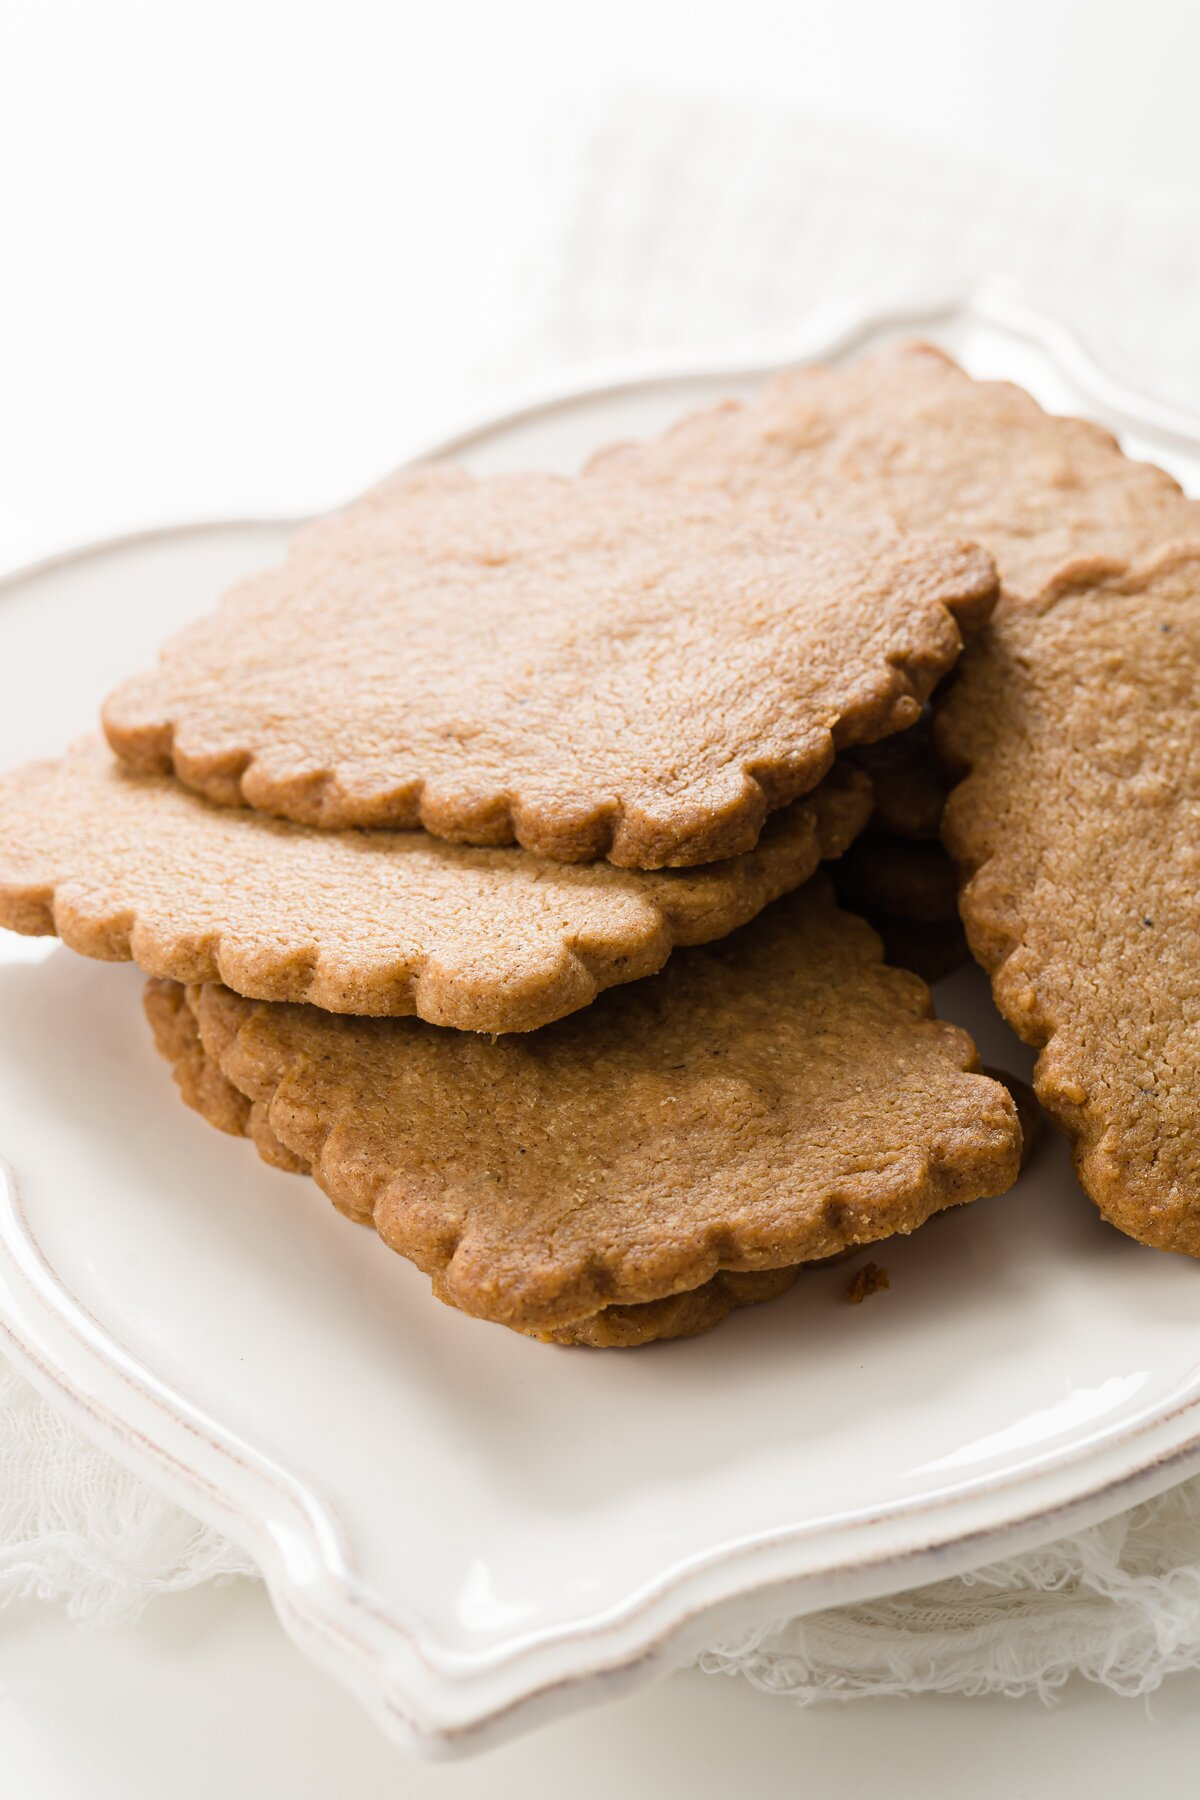 White plate of speculoos cookies in a pile